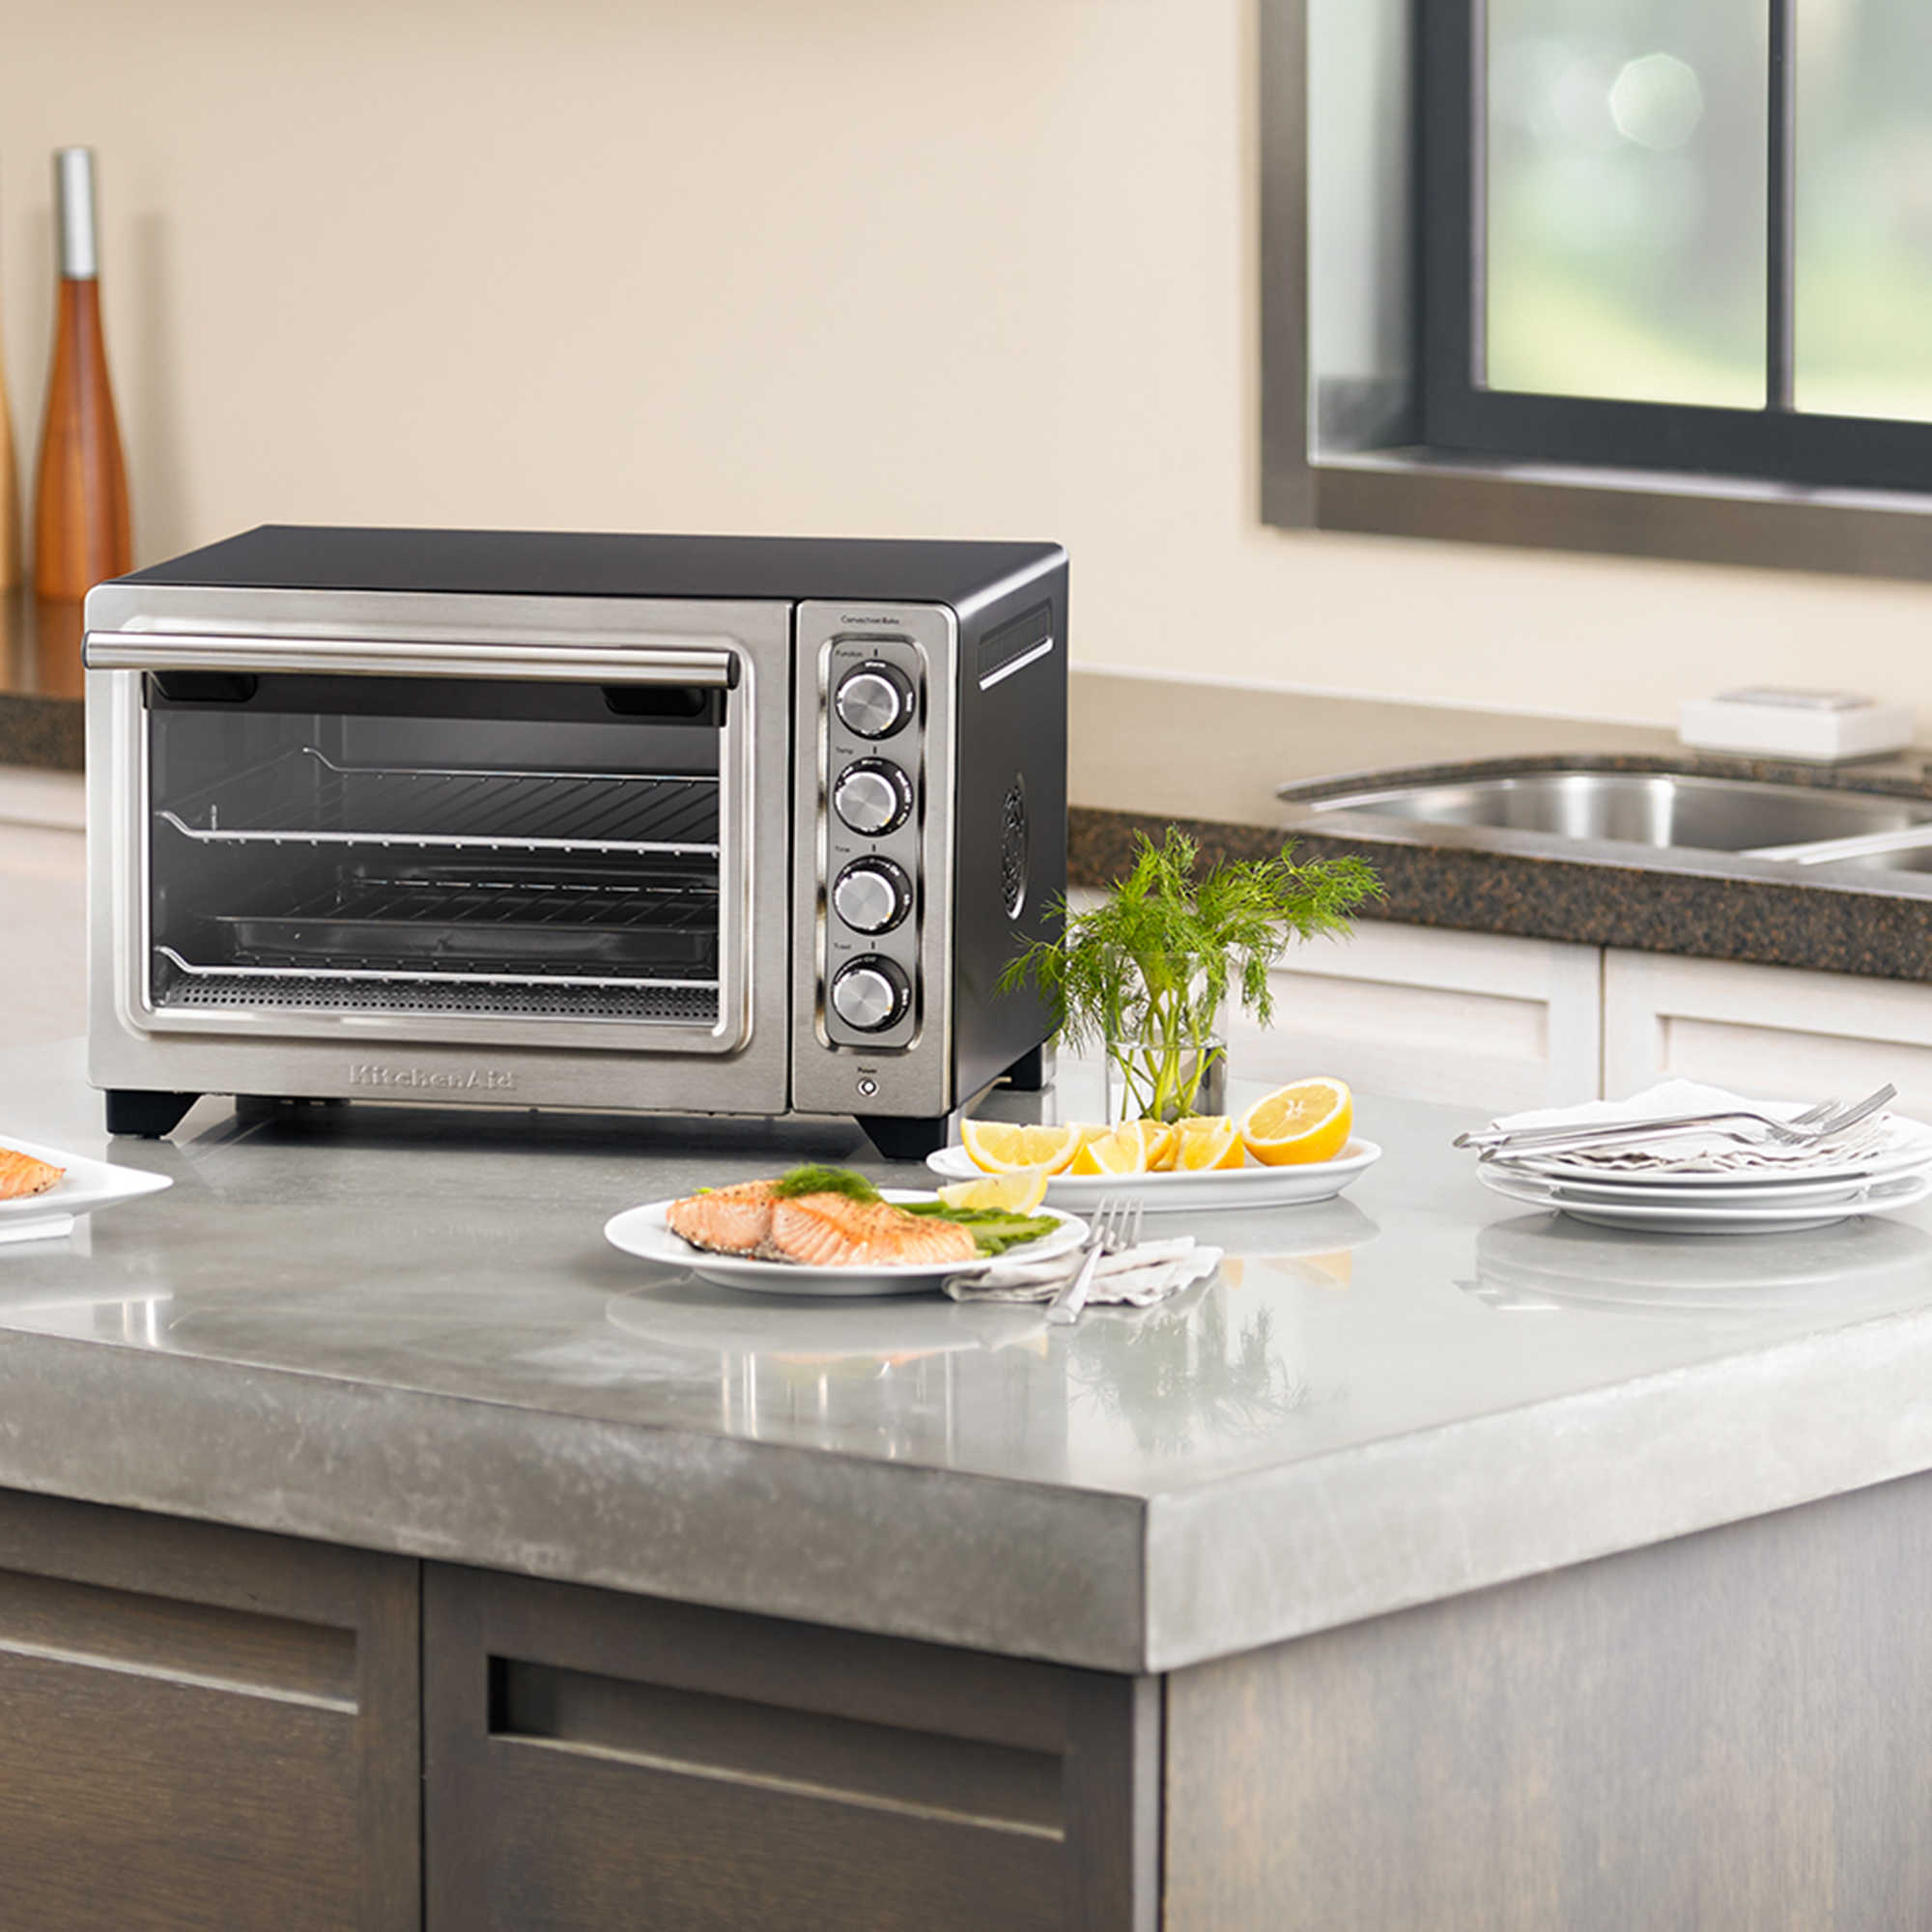 Artisan Countertop Convection Oven : ... oven about this item kco253bm 12inch compact convection countertop